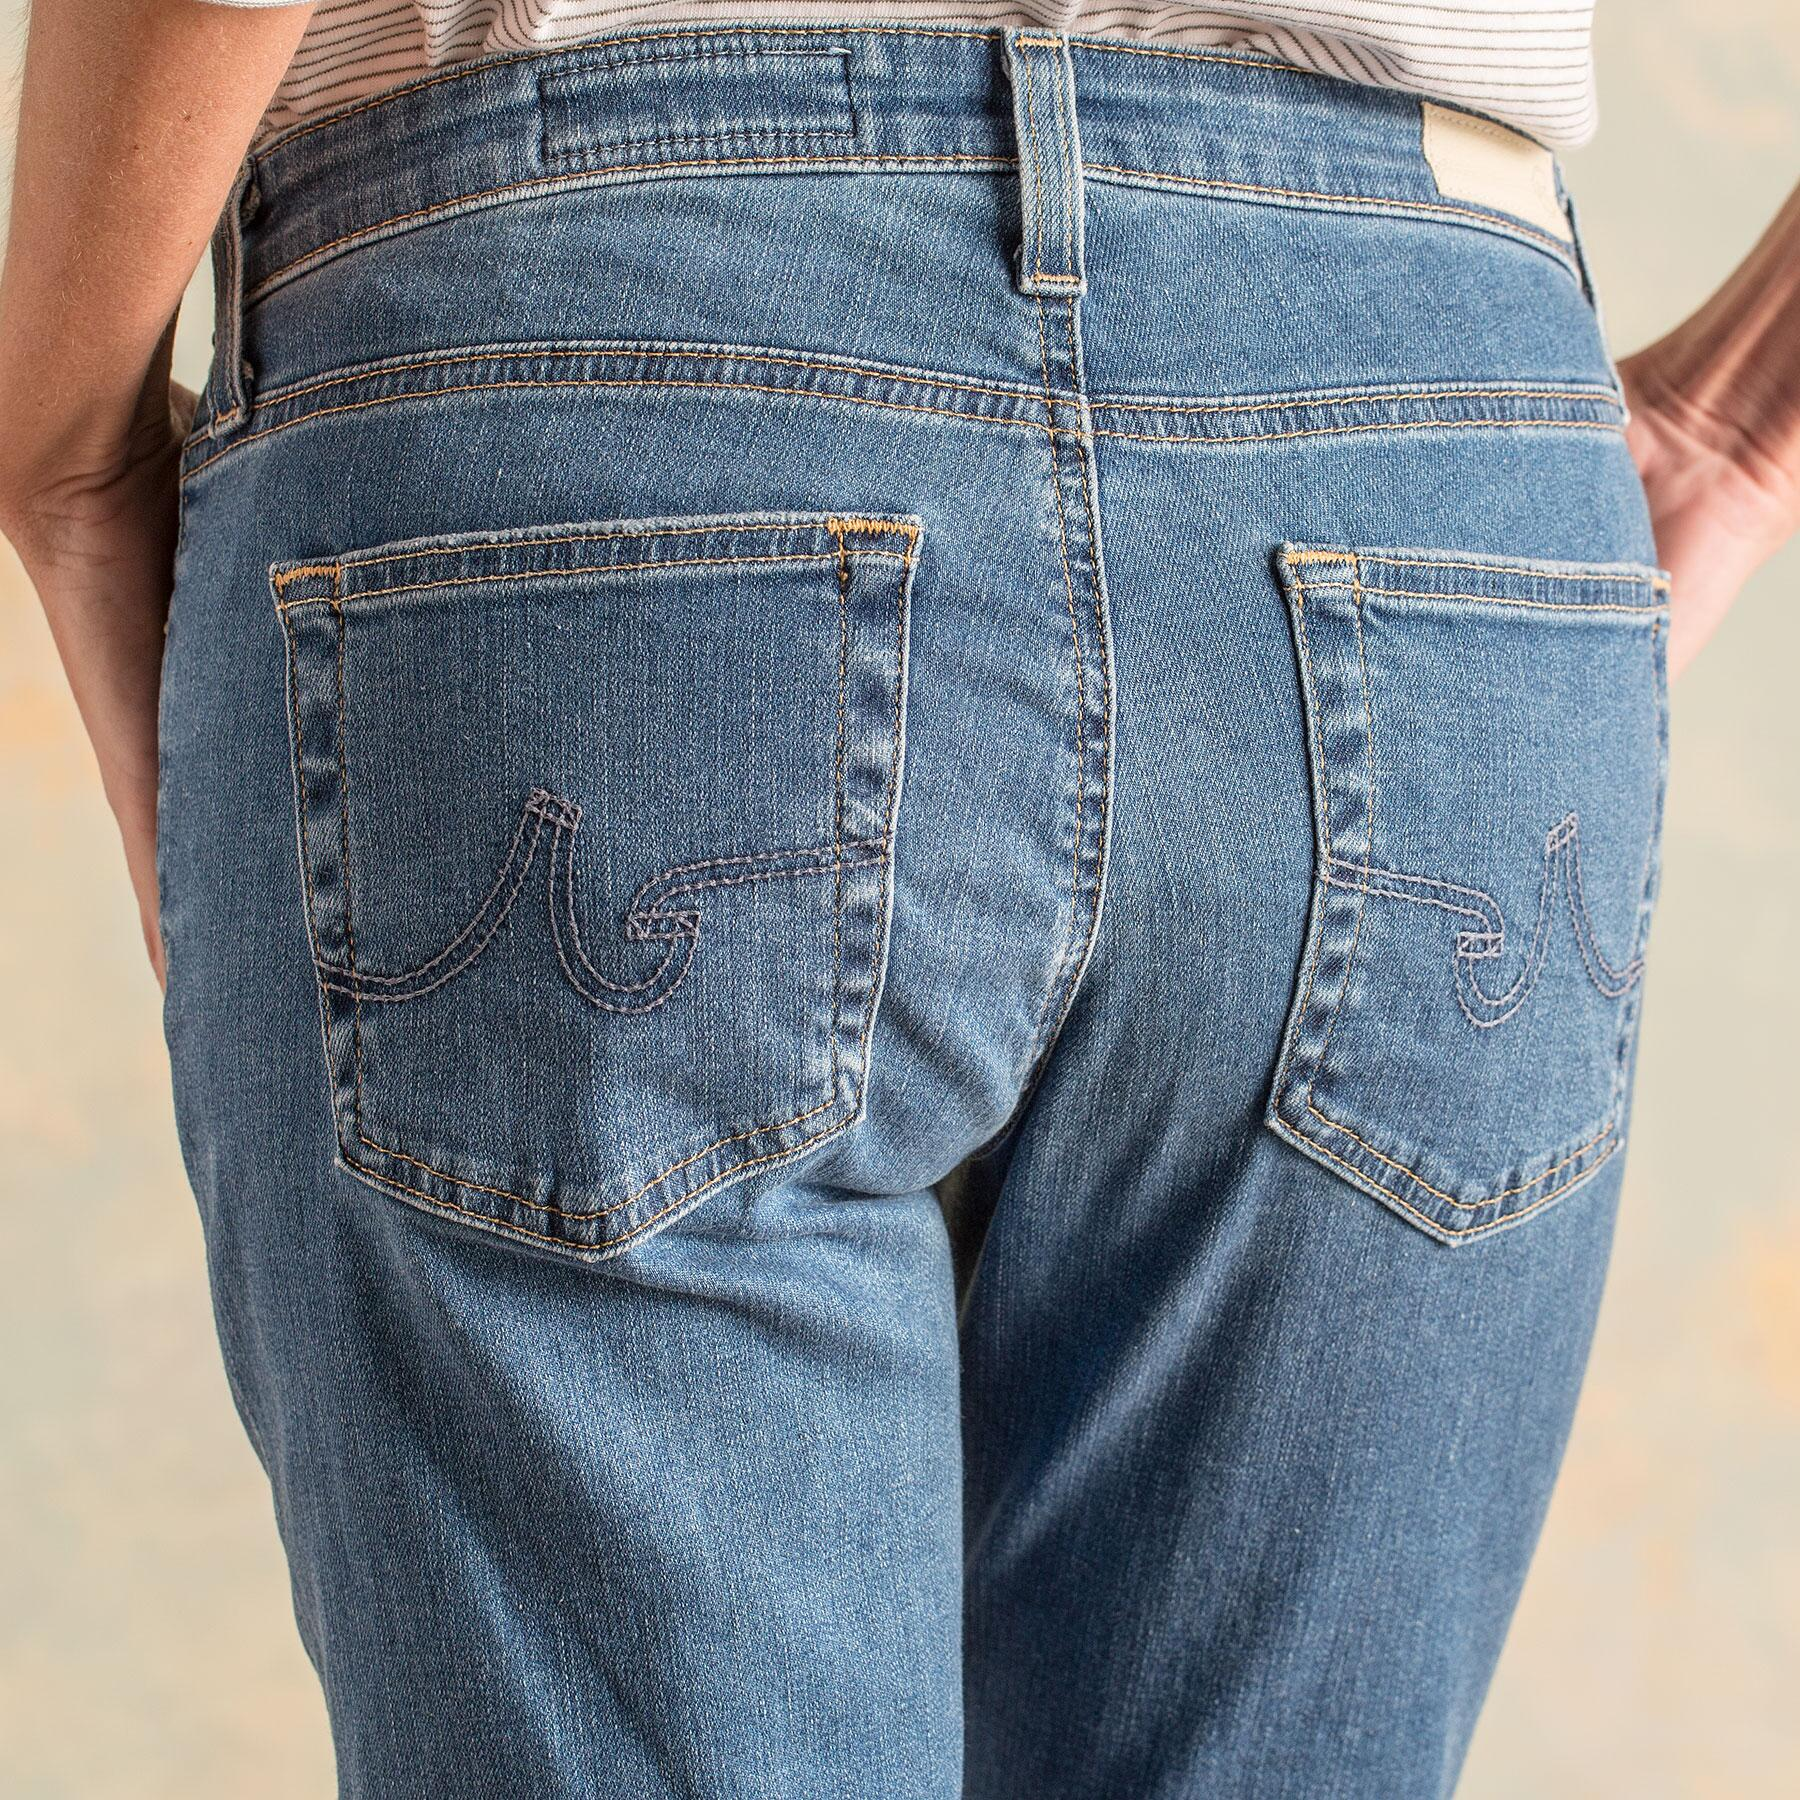 VINTAGE PRIMA JEANS BY A G: View 3